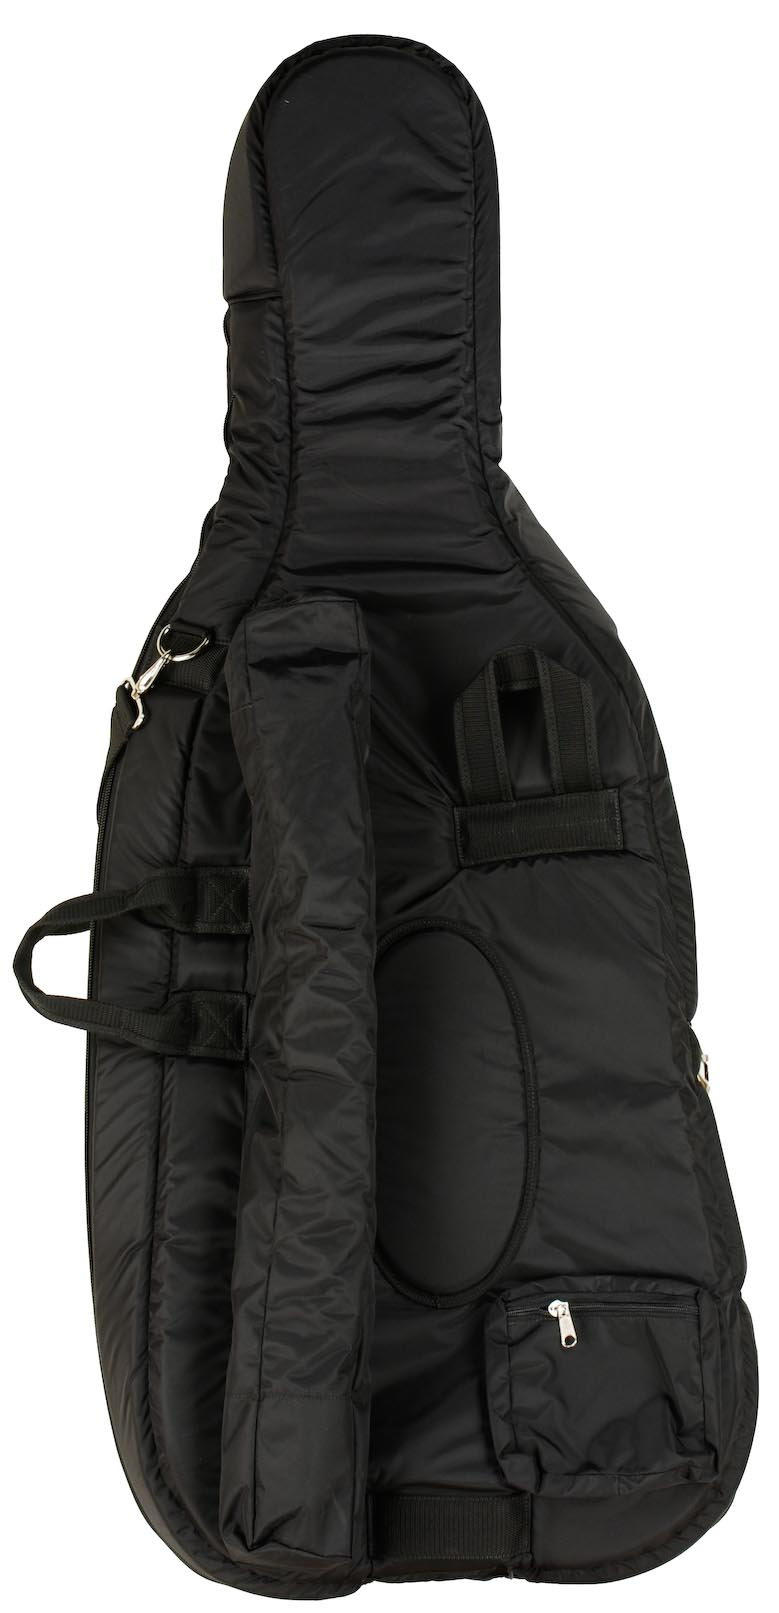 Hybrid/Carved Cello Rental Bag Top